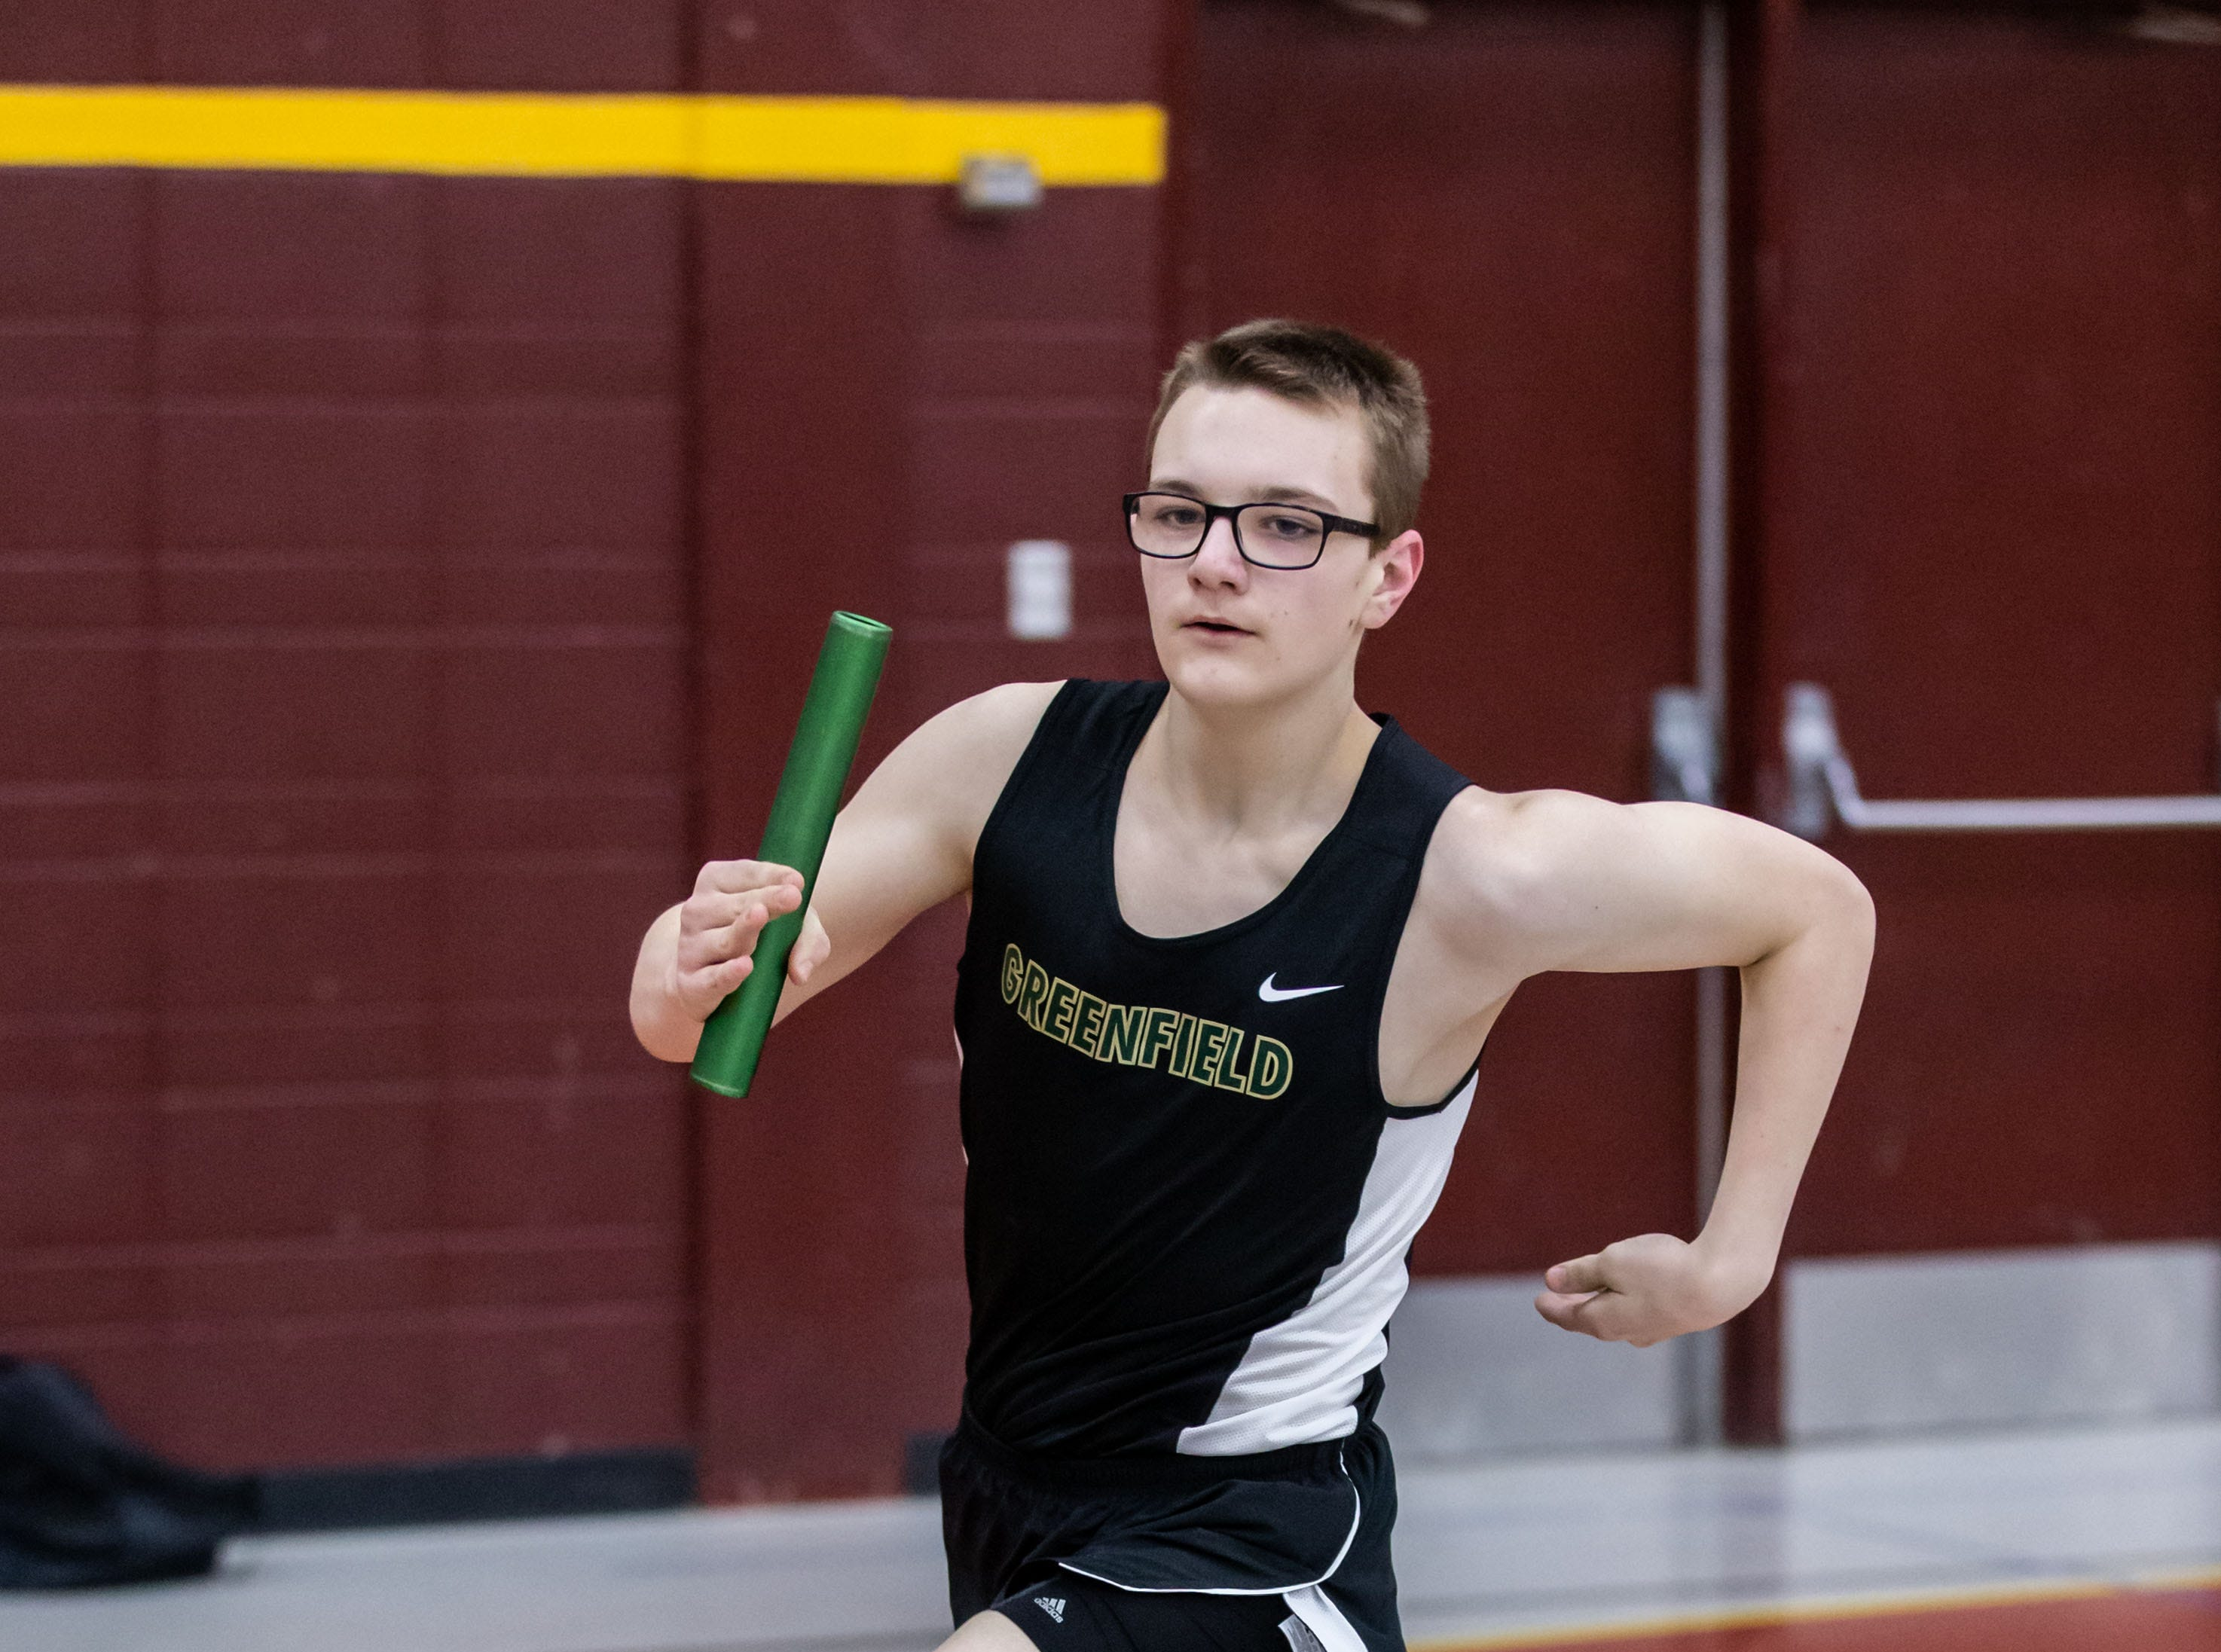 Greenfield's Zackery Mrnik competes in the distance medley relay at the Reinhard Bulldog Relays hosted by West Allis Central on Friday, March 15, 2019.